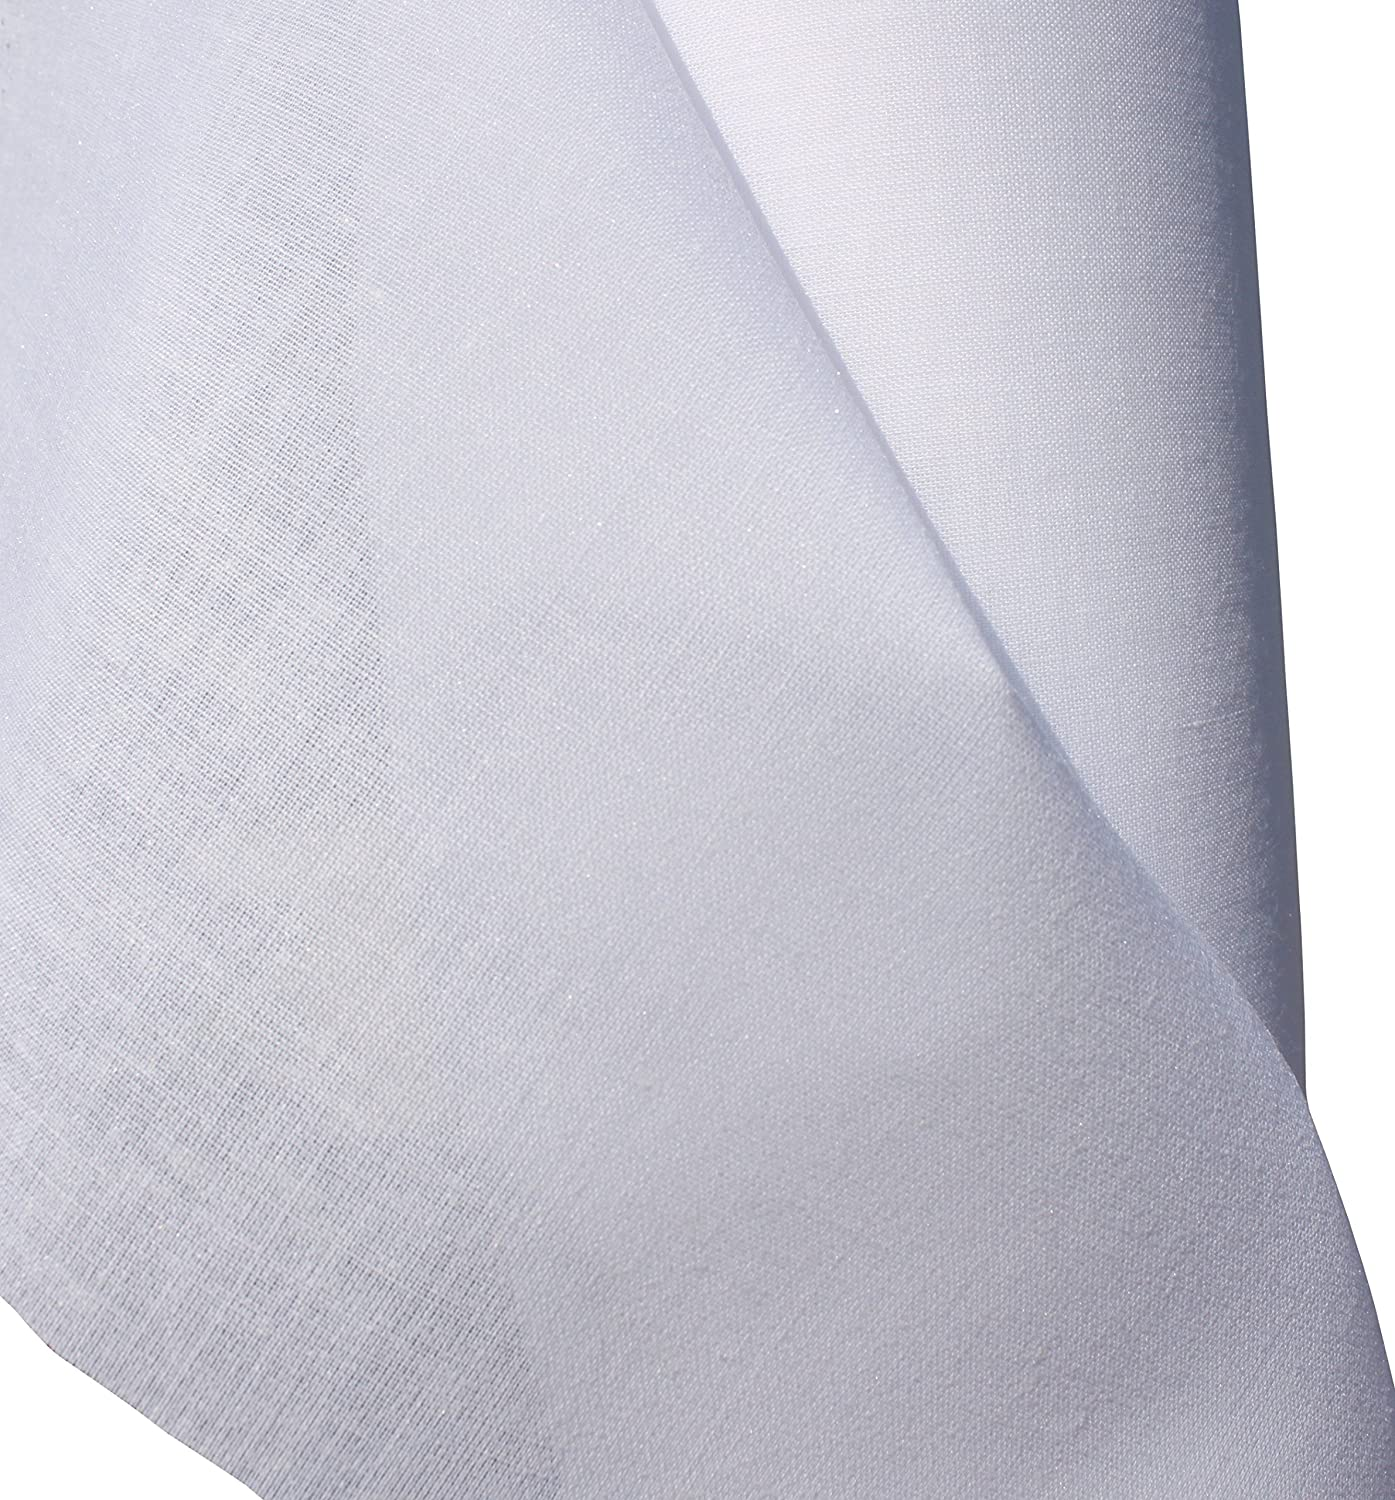 Lucky Brand Iron On Interfacing with Glue Coating Thin White 55 inch x 1 Yard